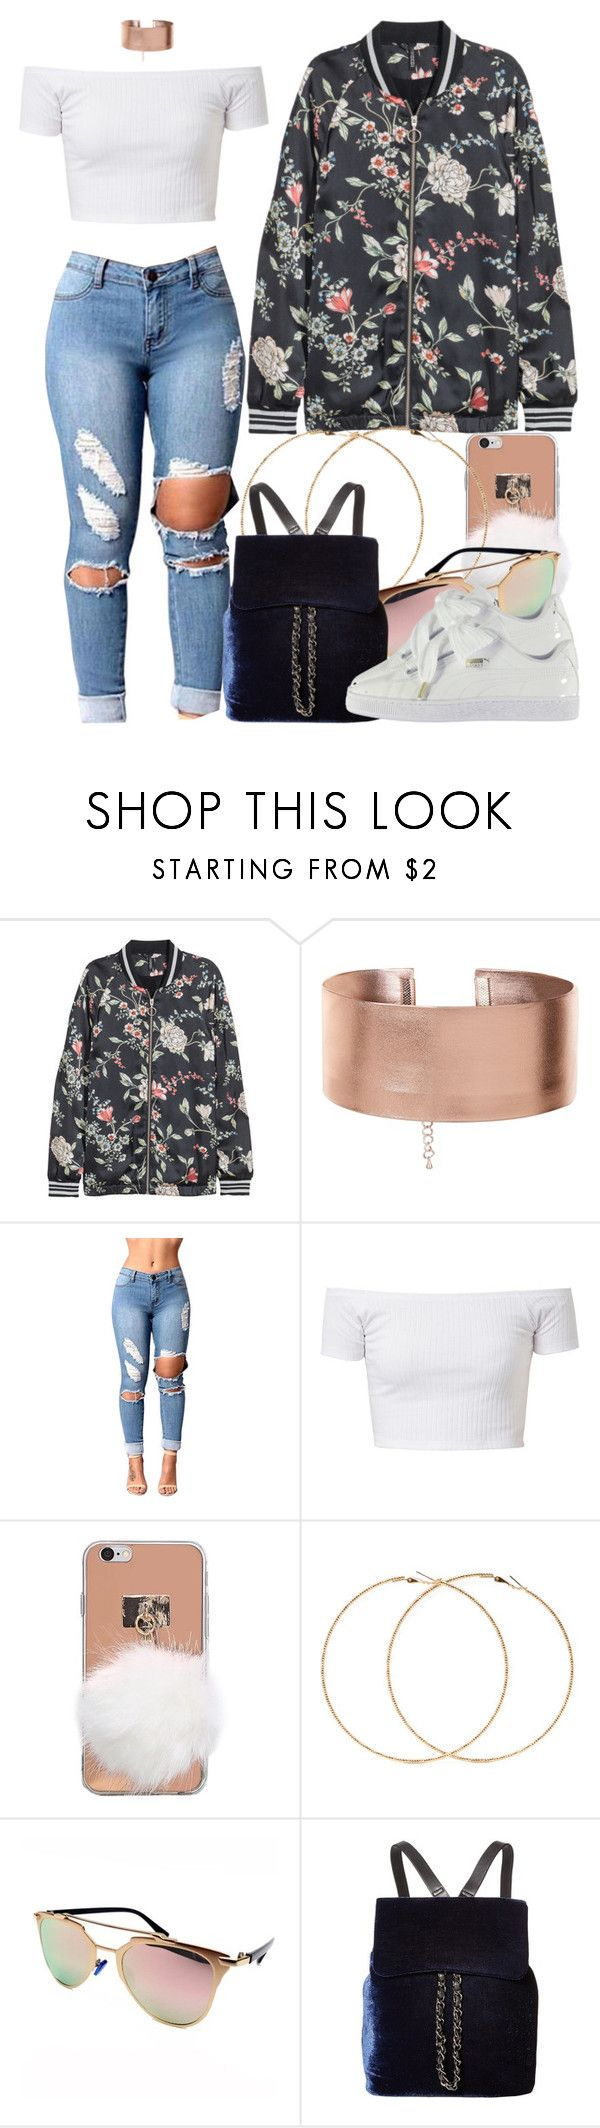 """""""2 23 17"""" by miizz-starburst ❤ liked on Polyvore featuring Forever 21, Steve Madden and Puma"""